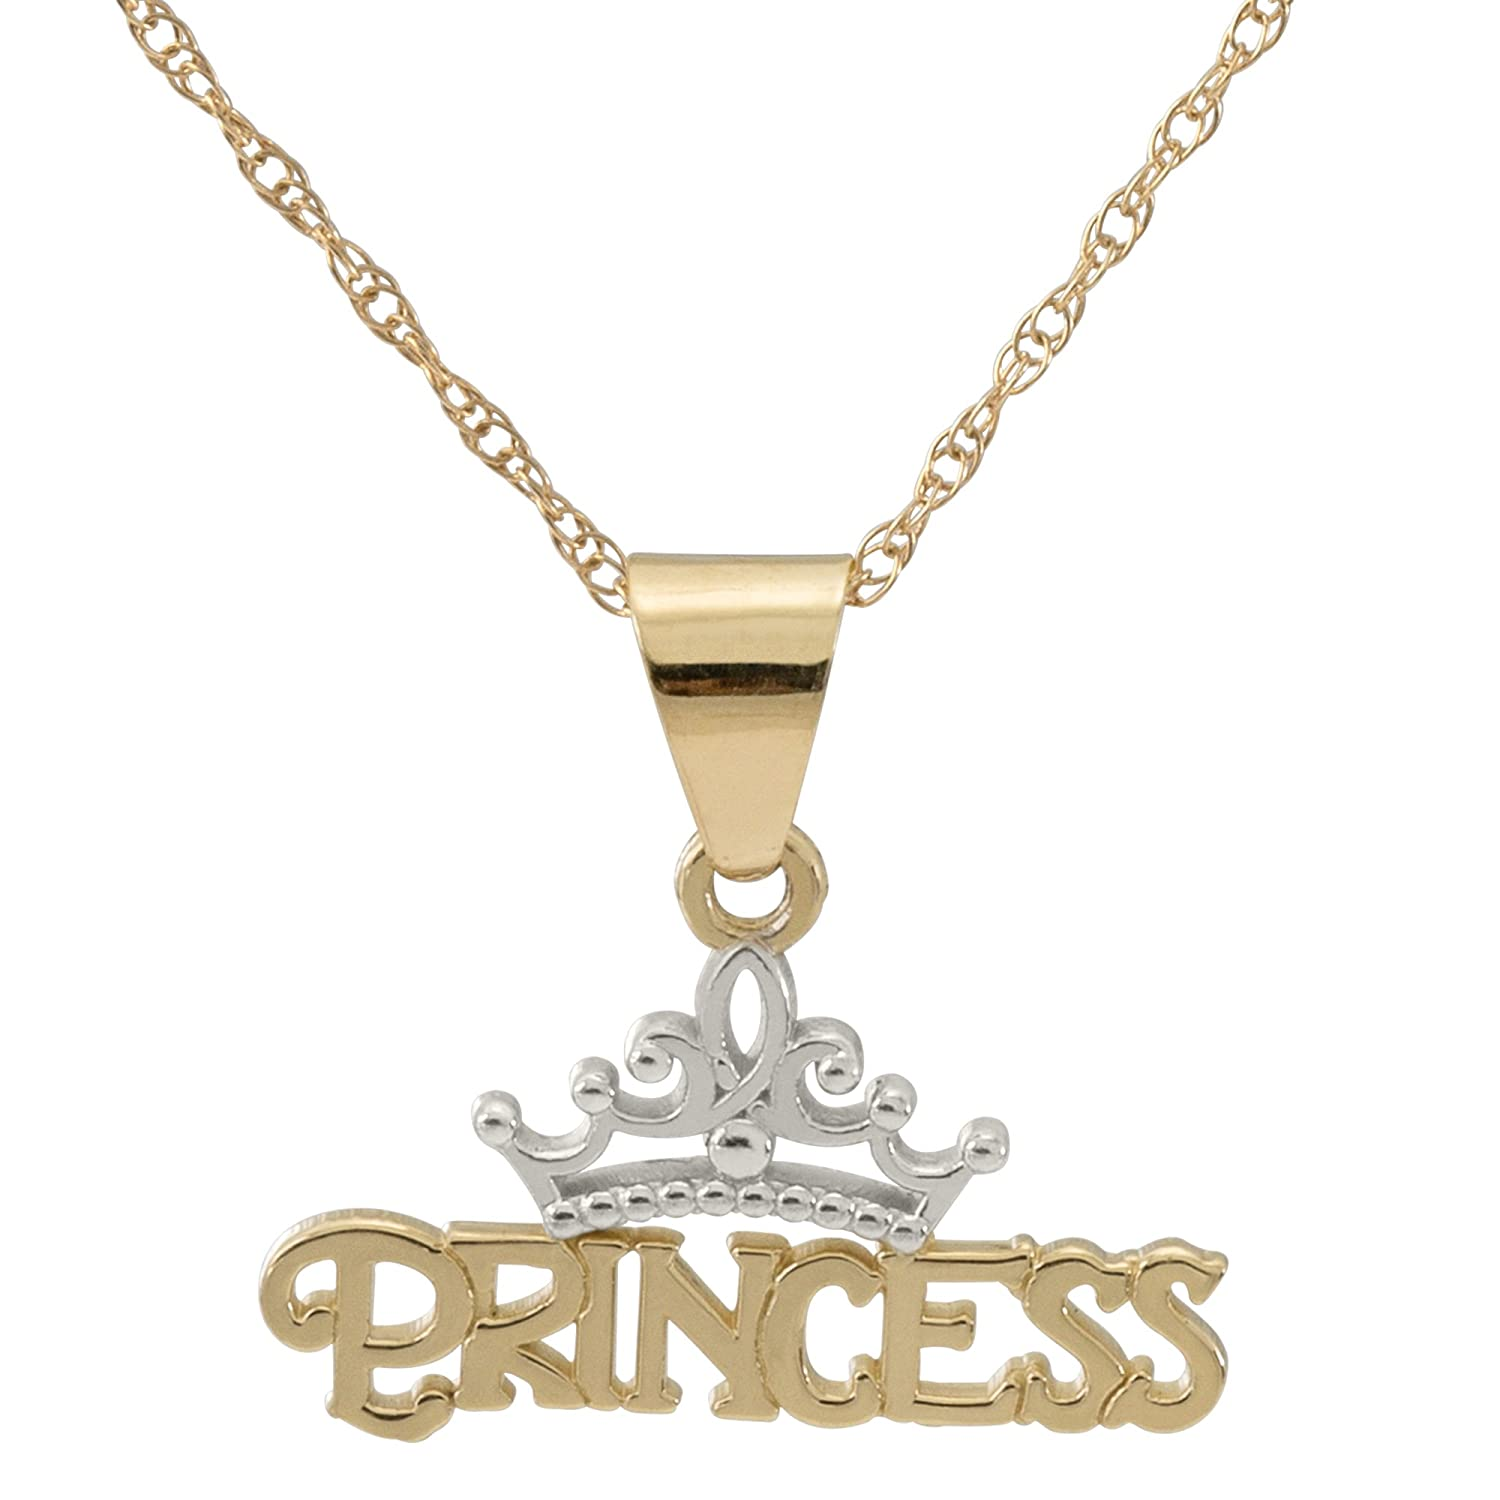 sv santa image products princess p necklace necklaces collections maria jewelry oval